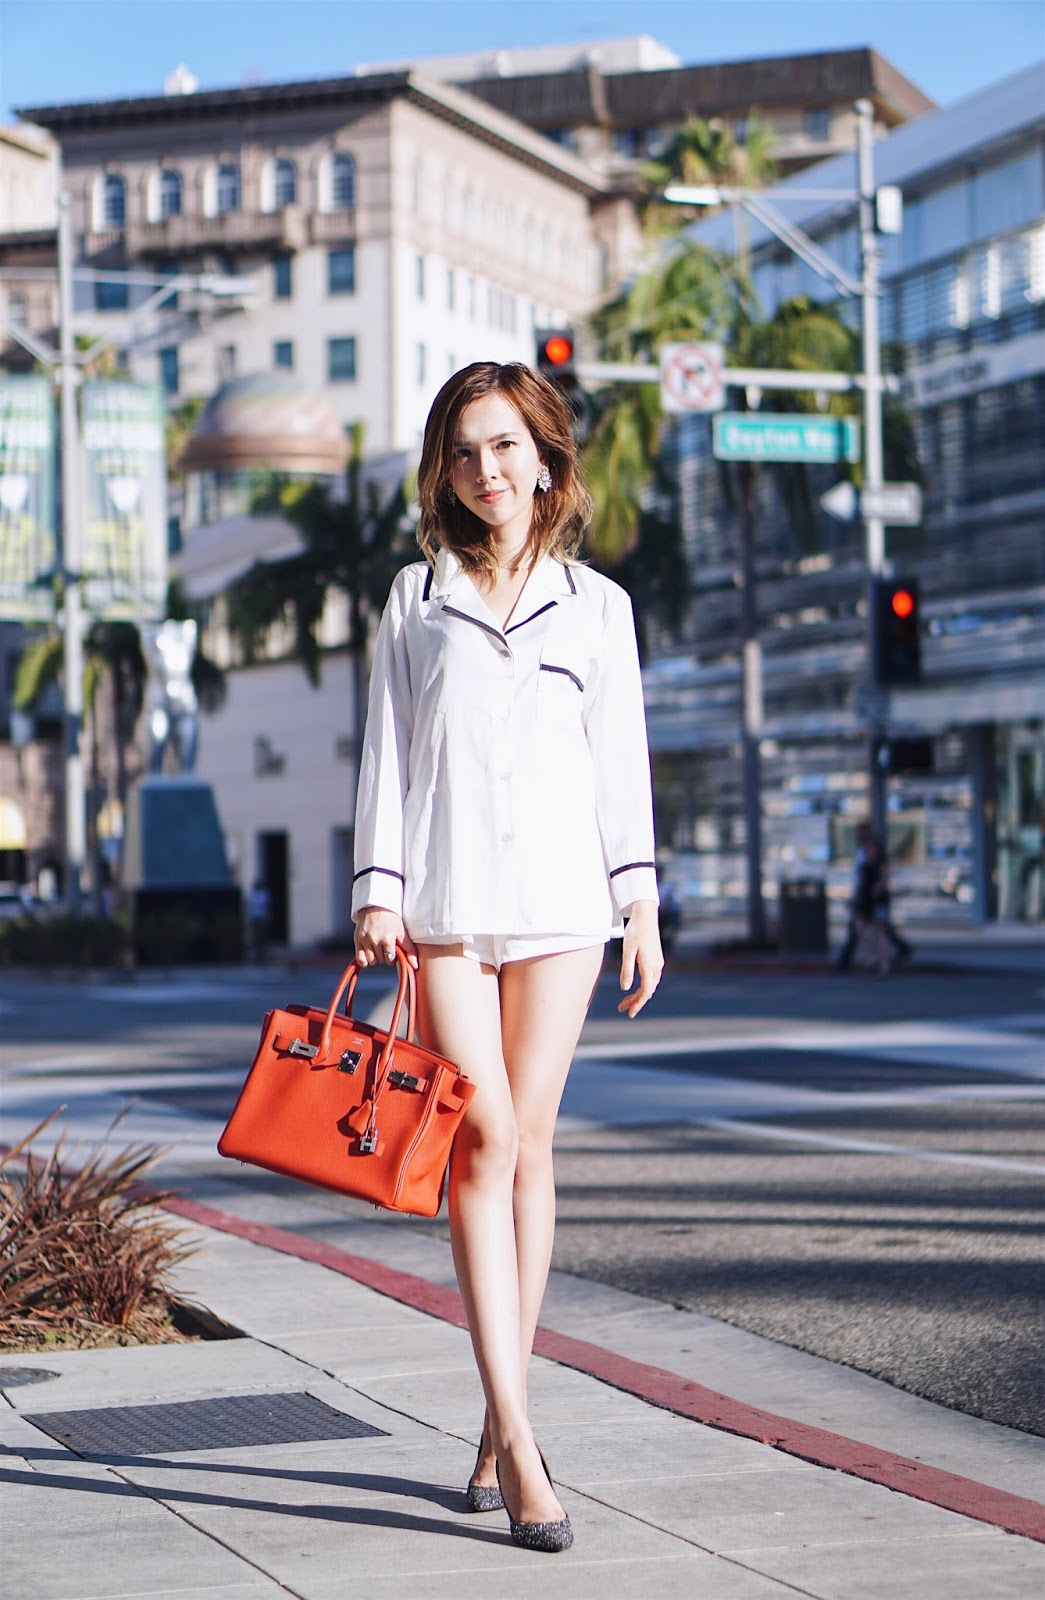 brand new arriving up-to-date styling Uyen Meow: Pajamas Street Style